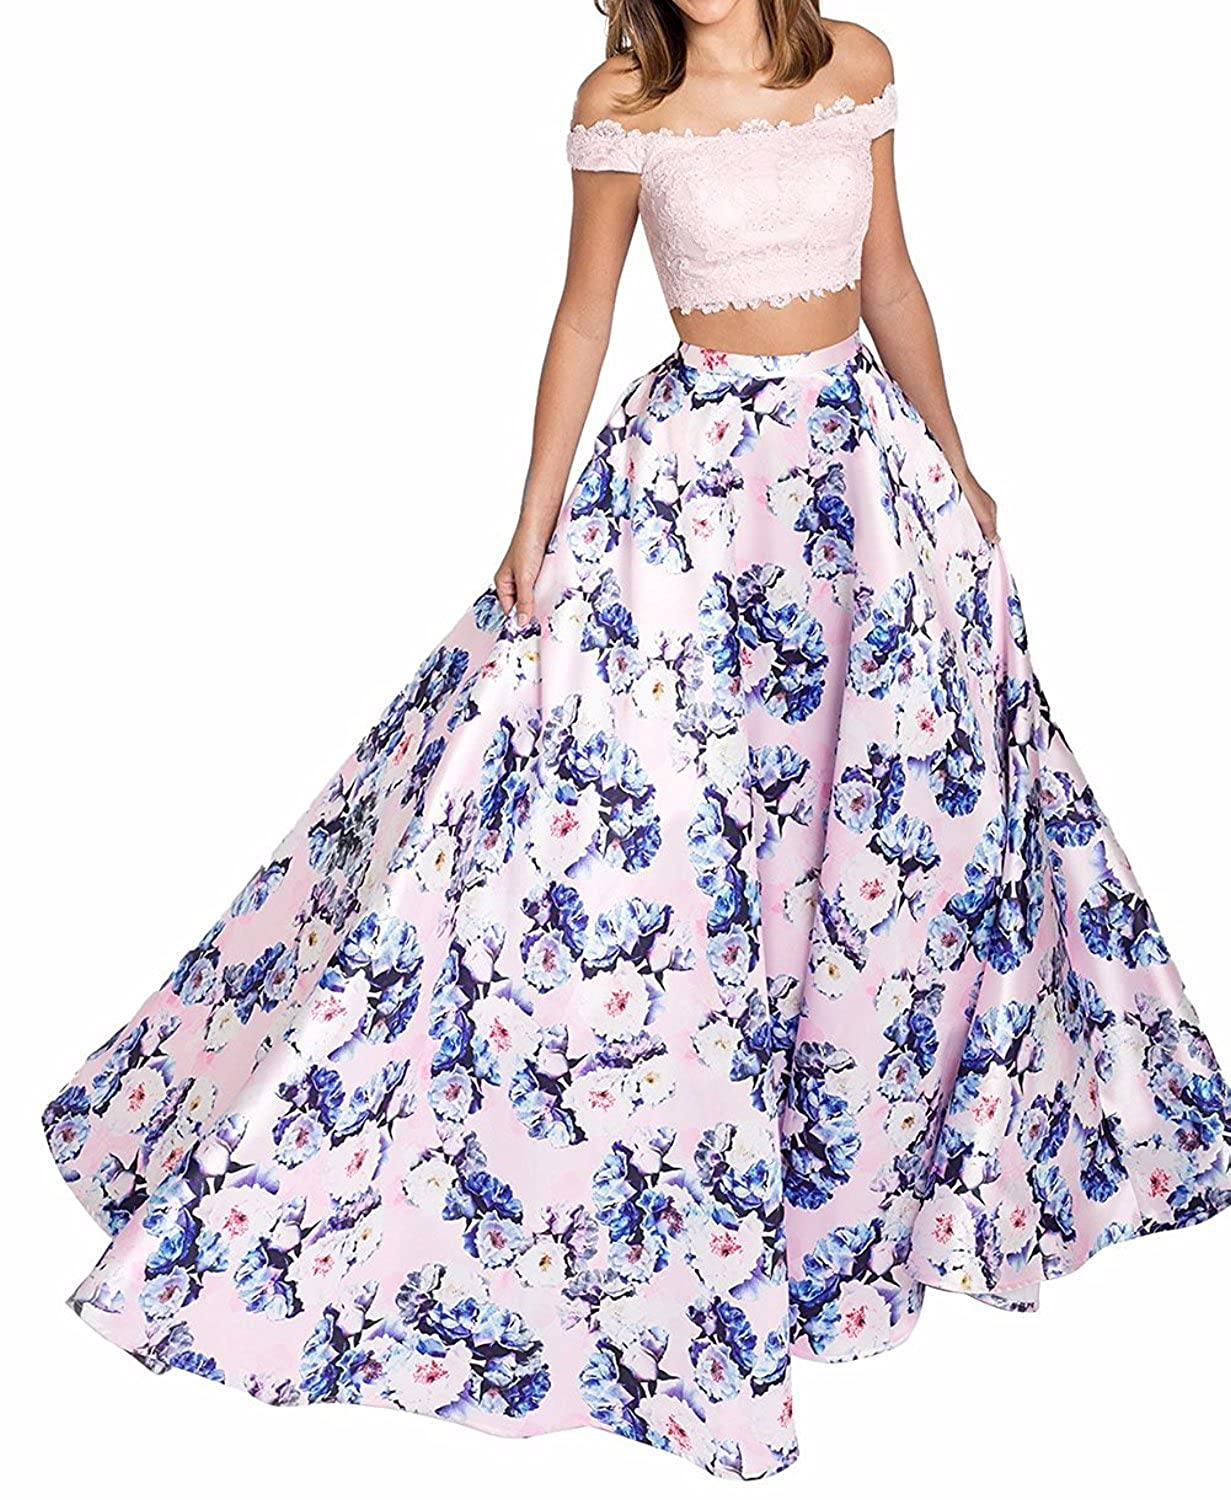 Pink Yiweir Women's Floral Two Piece Off Shoulder Prom Dresses 2018 Long Formal Evening Gowns YF018